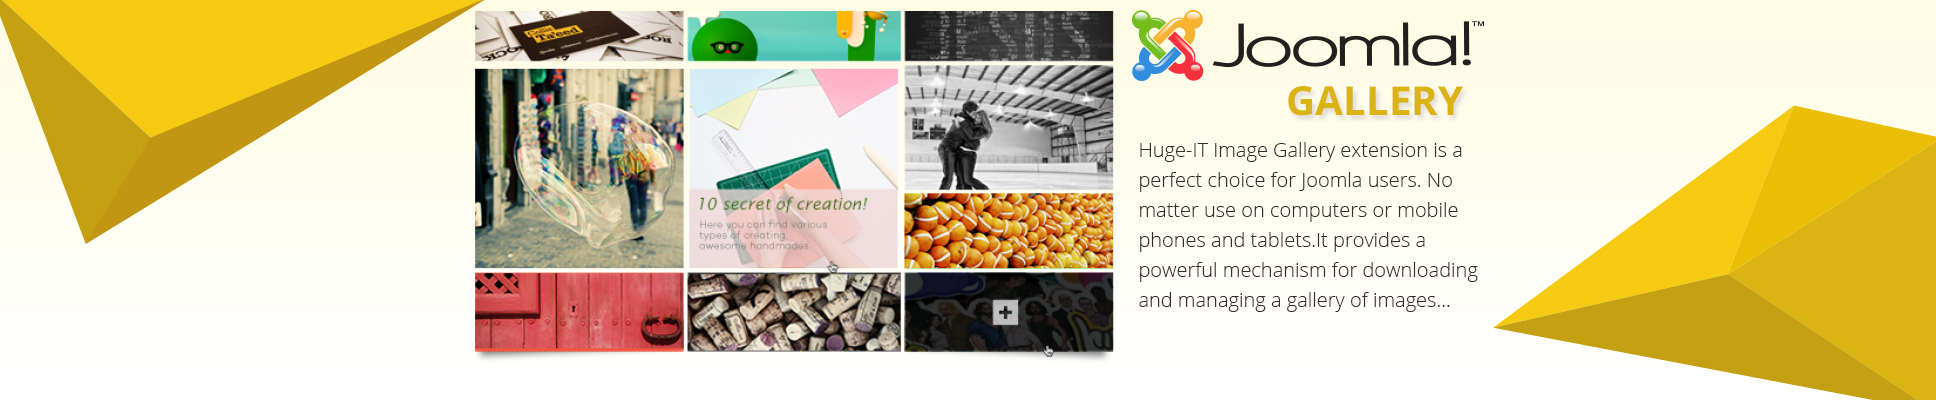 Joomla Gallery Demo 5 Thumbnails